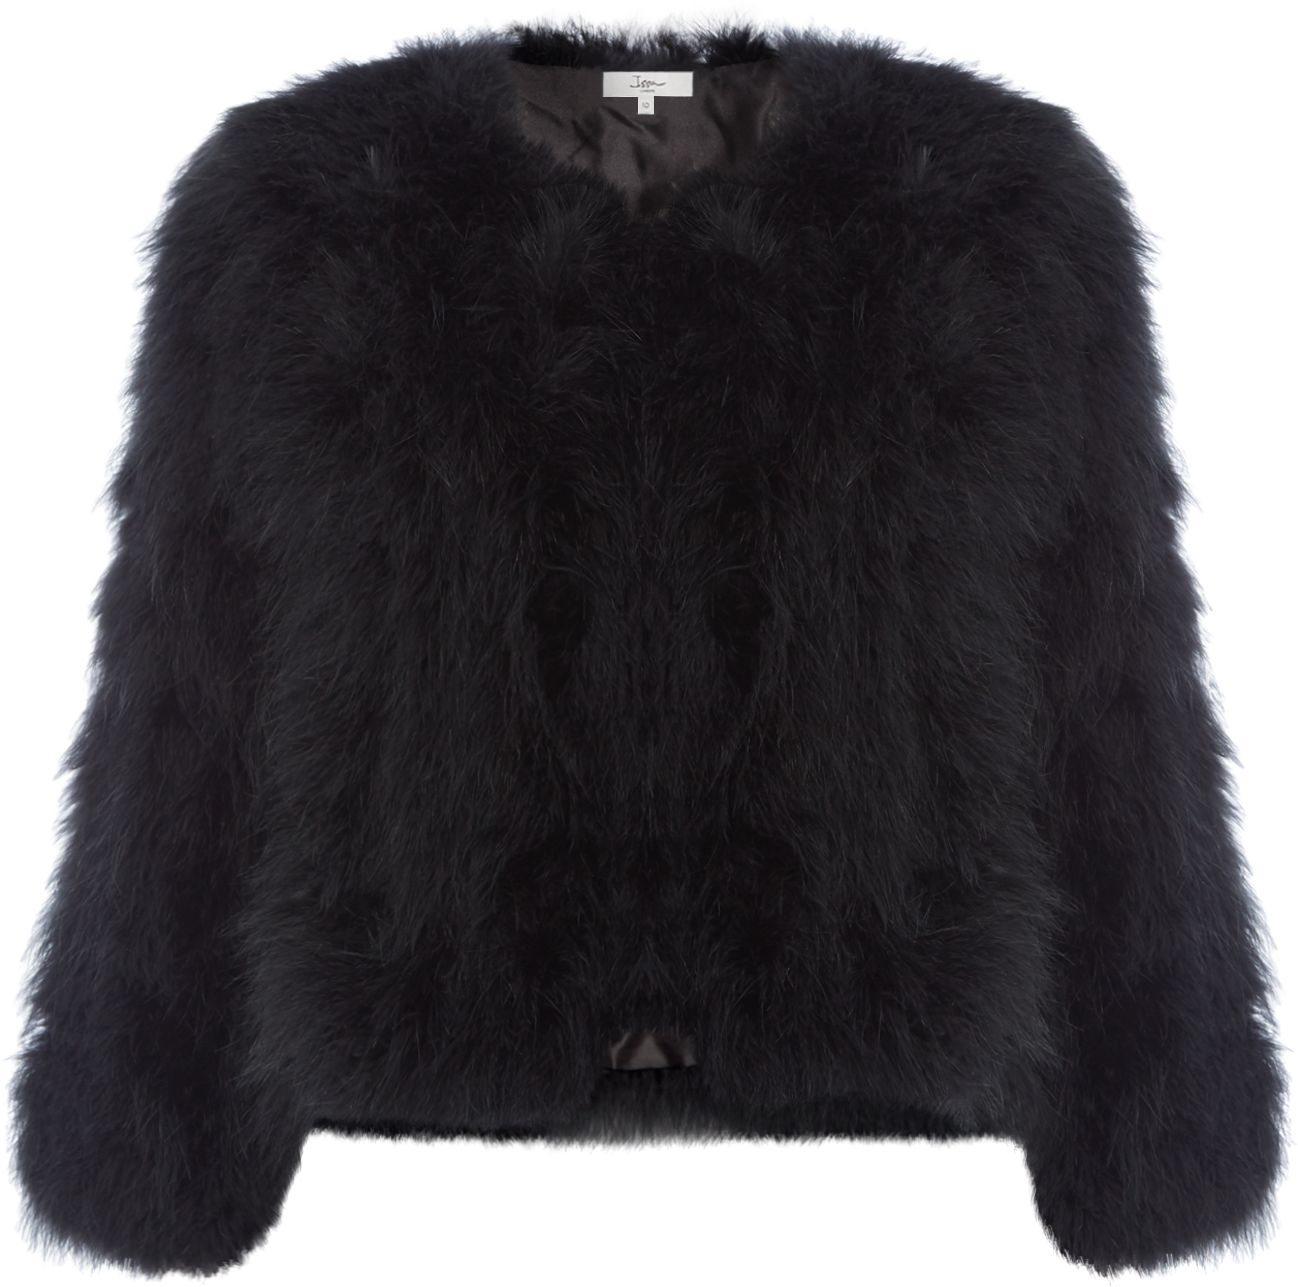 ISSA Lottie Marabou Jacket, Black